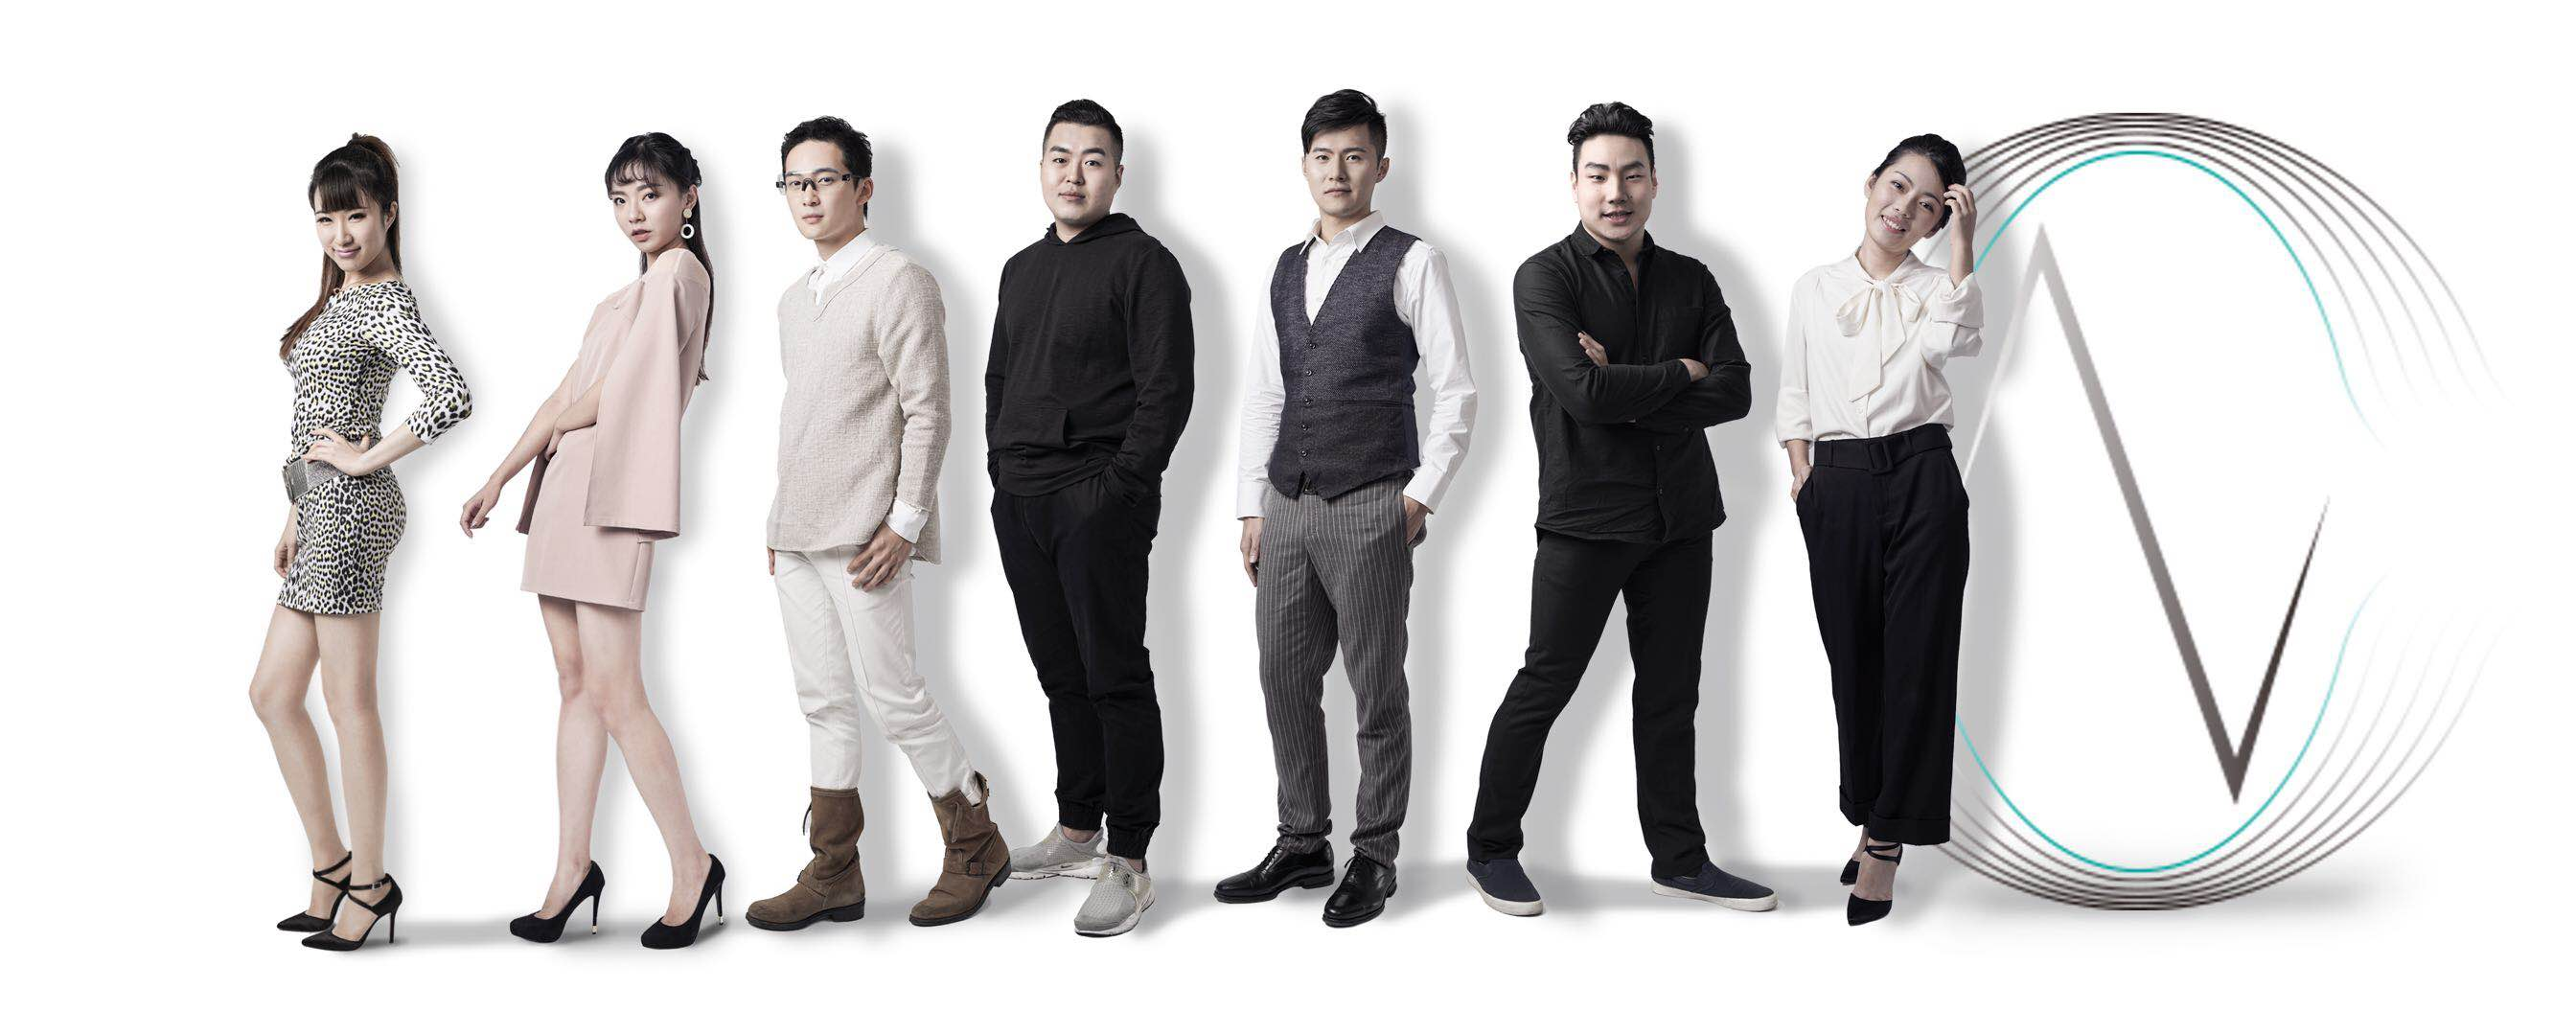 Six co-founders of Zedot team are post-90s generation, and all of them are Shanghainese (Image Credit: TechNode)